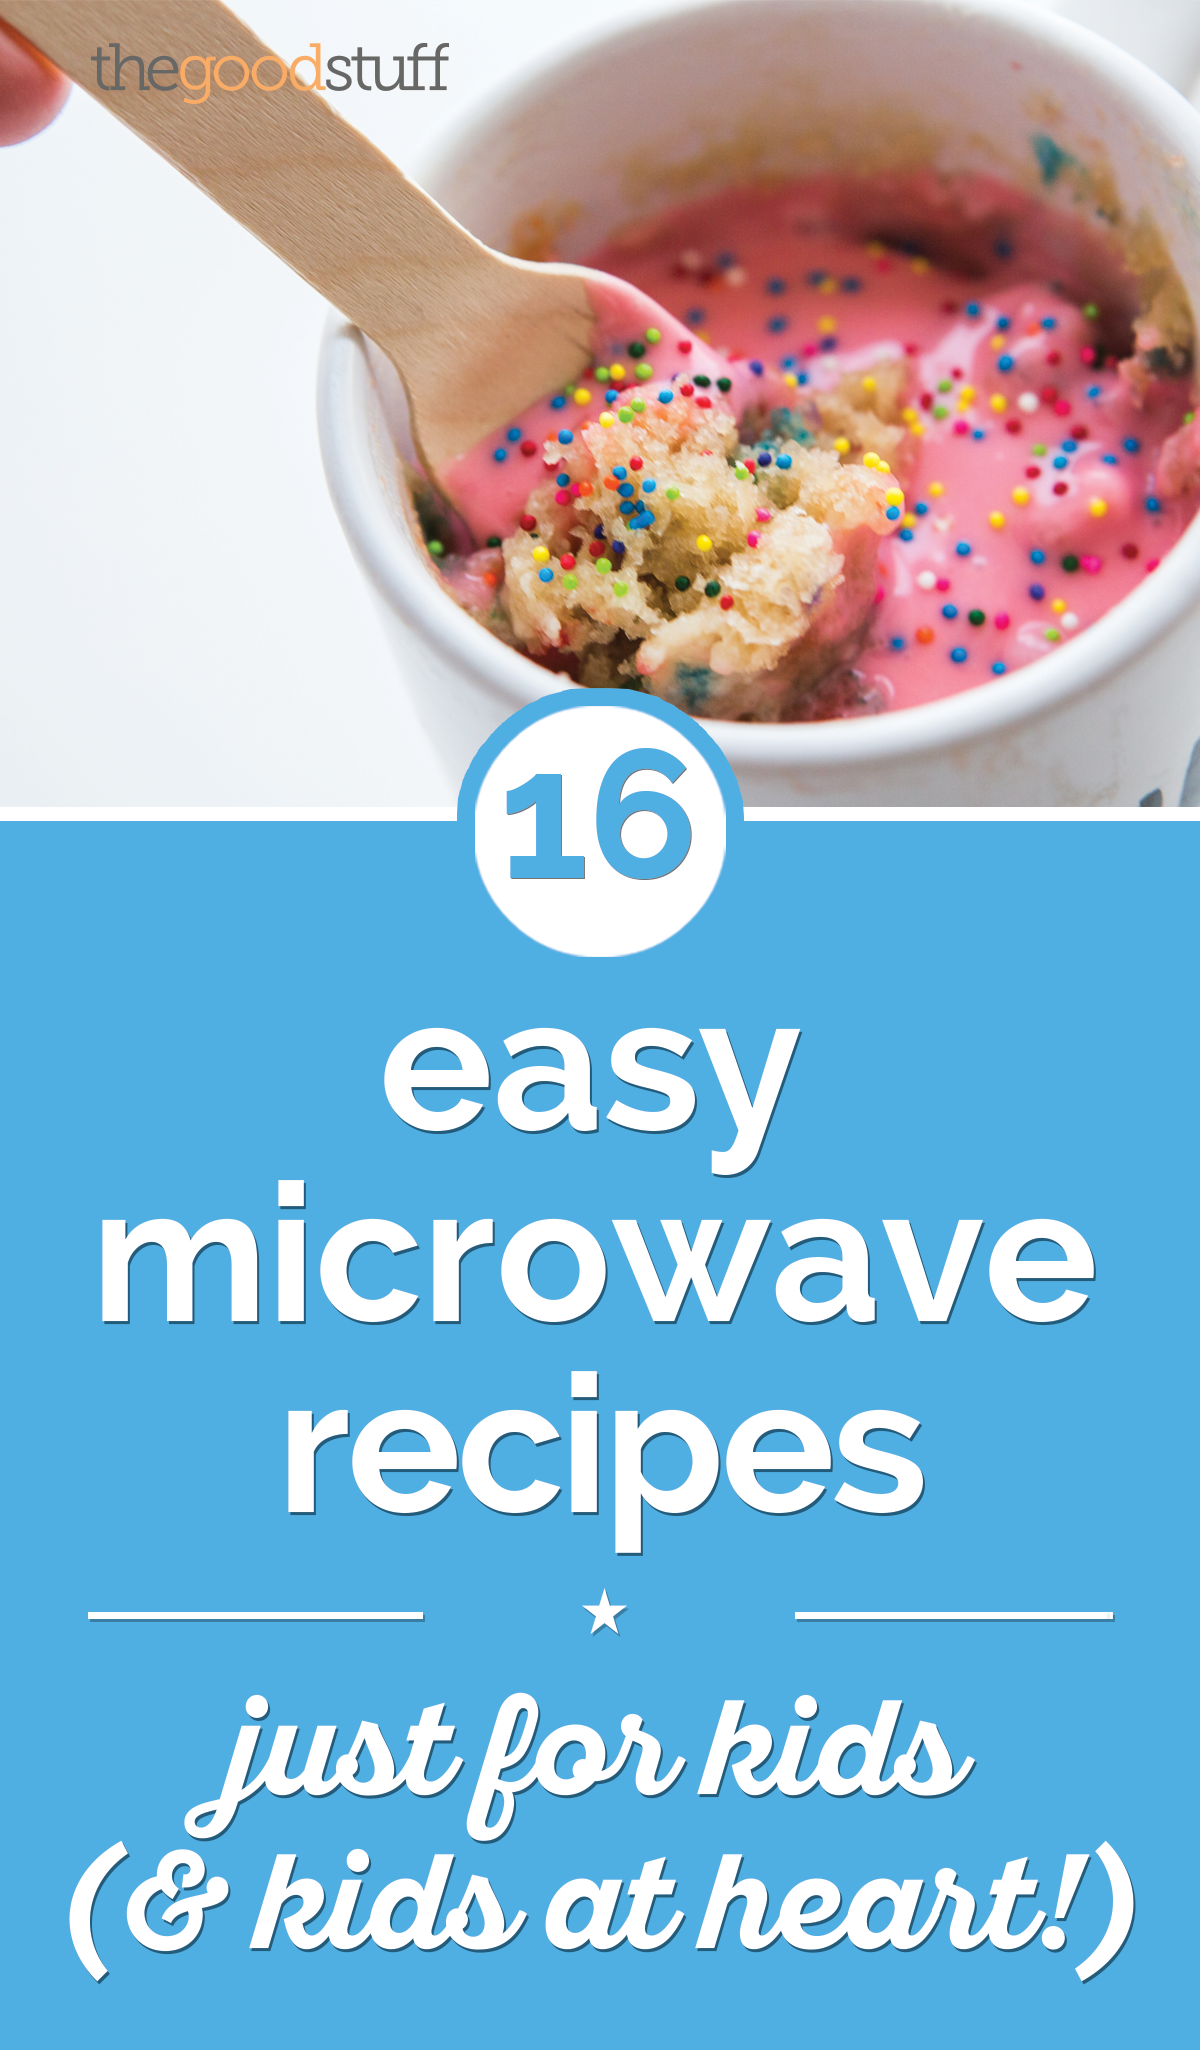 16 Easy Microwave Recipes Just For Kids At Heart Thegoodstuff